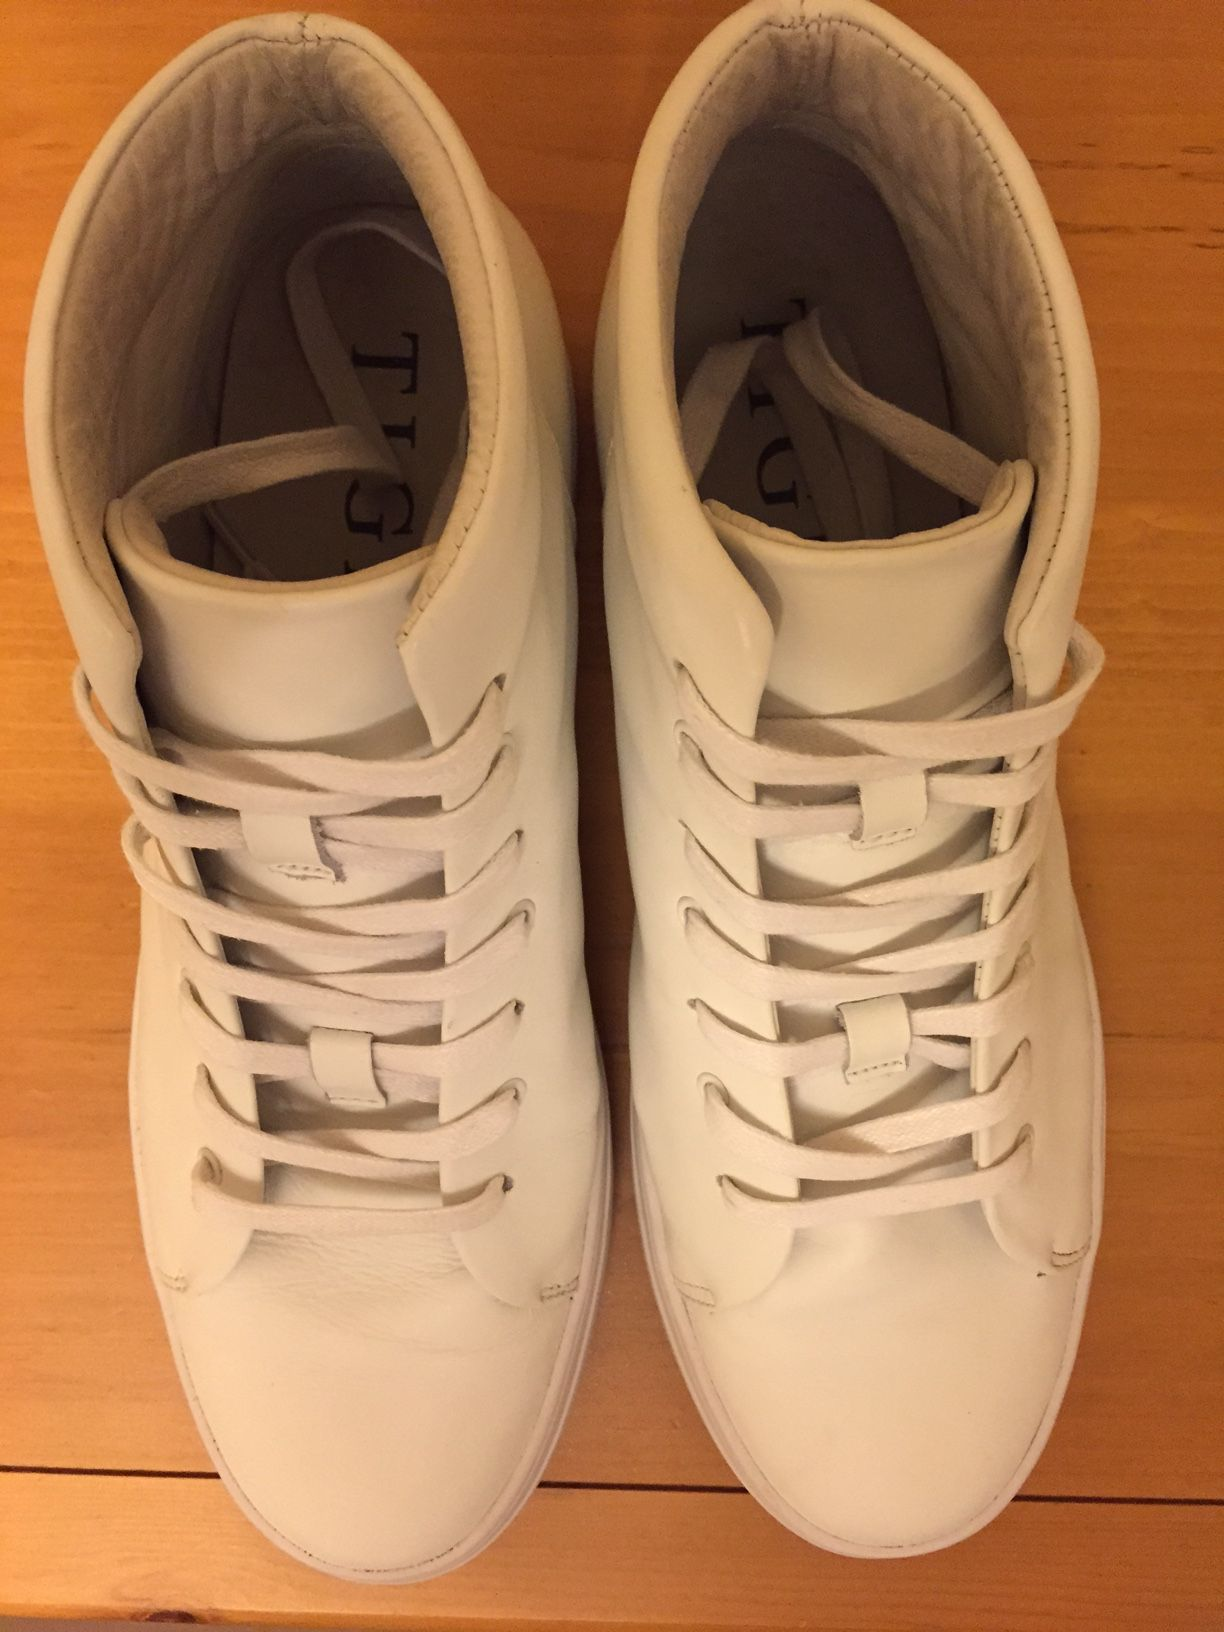 FrankieGT's photos in cheap alternative to Common Projects?